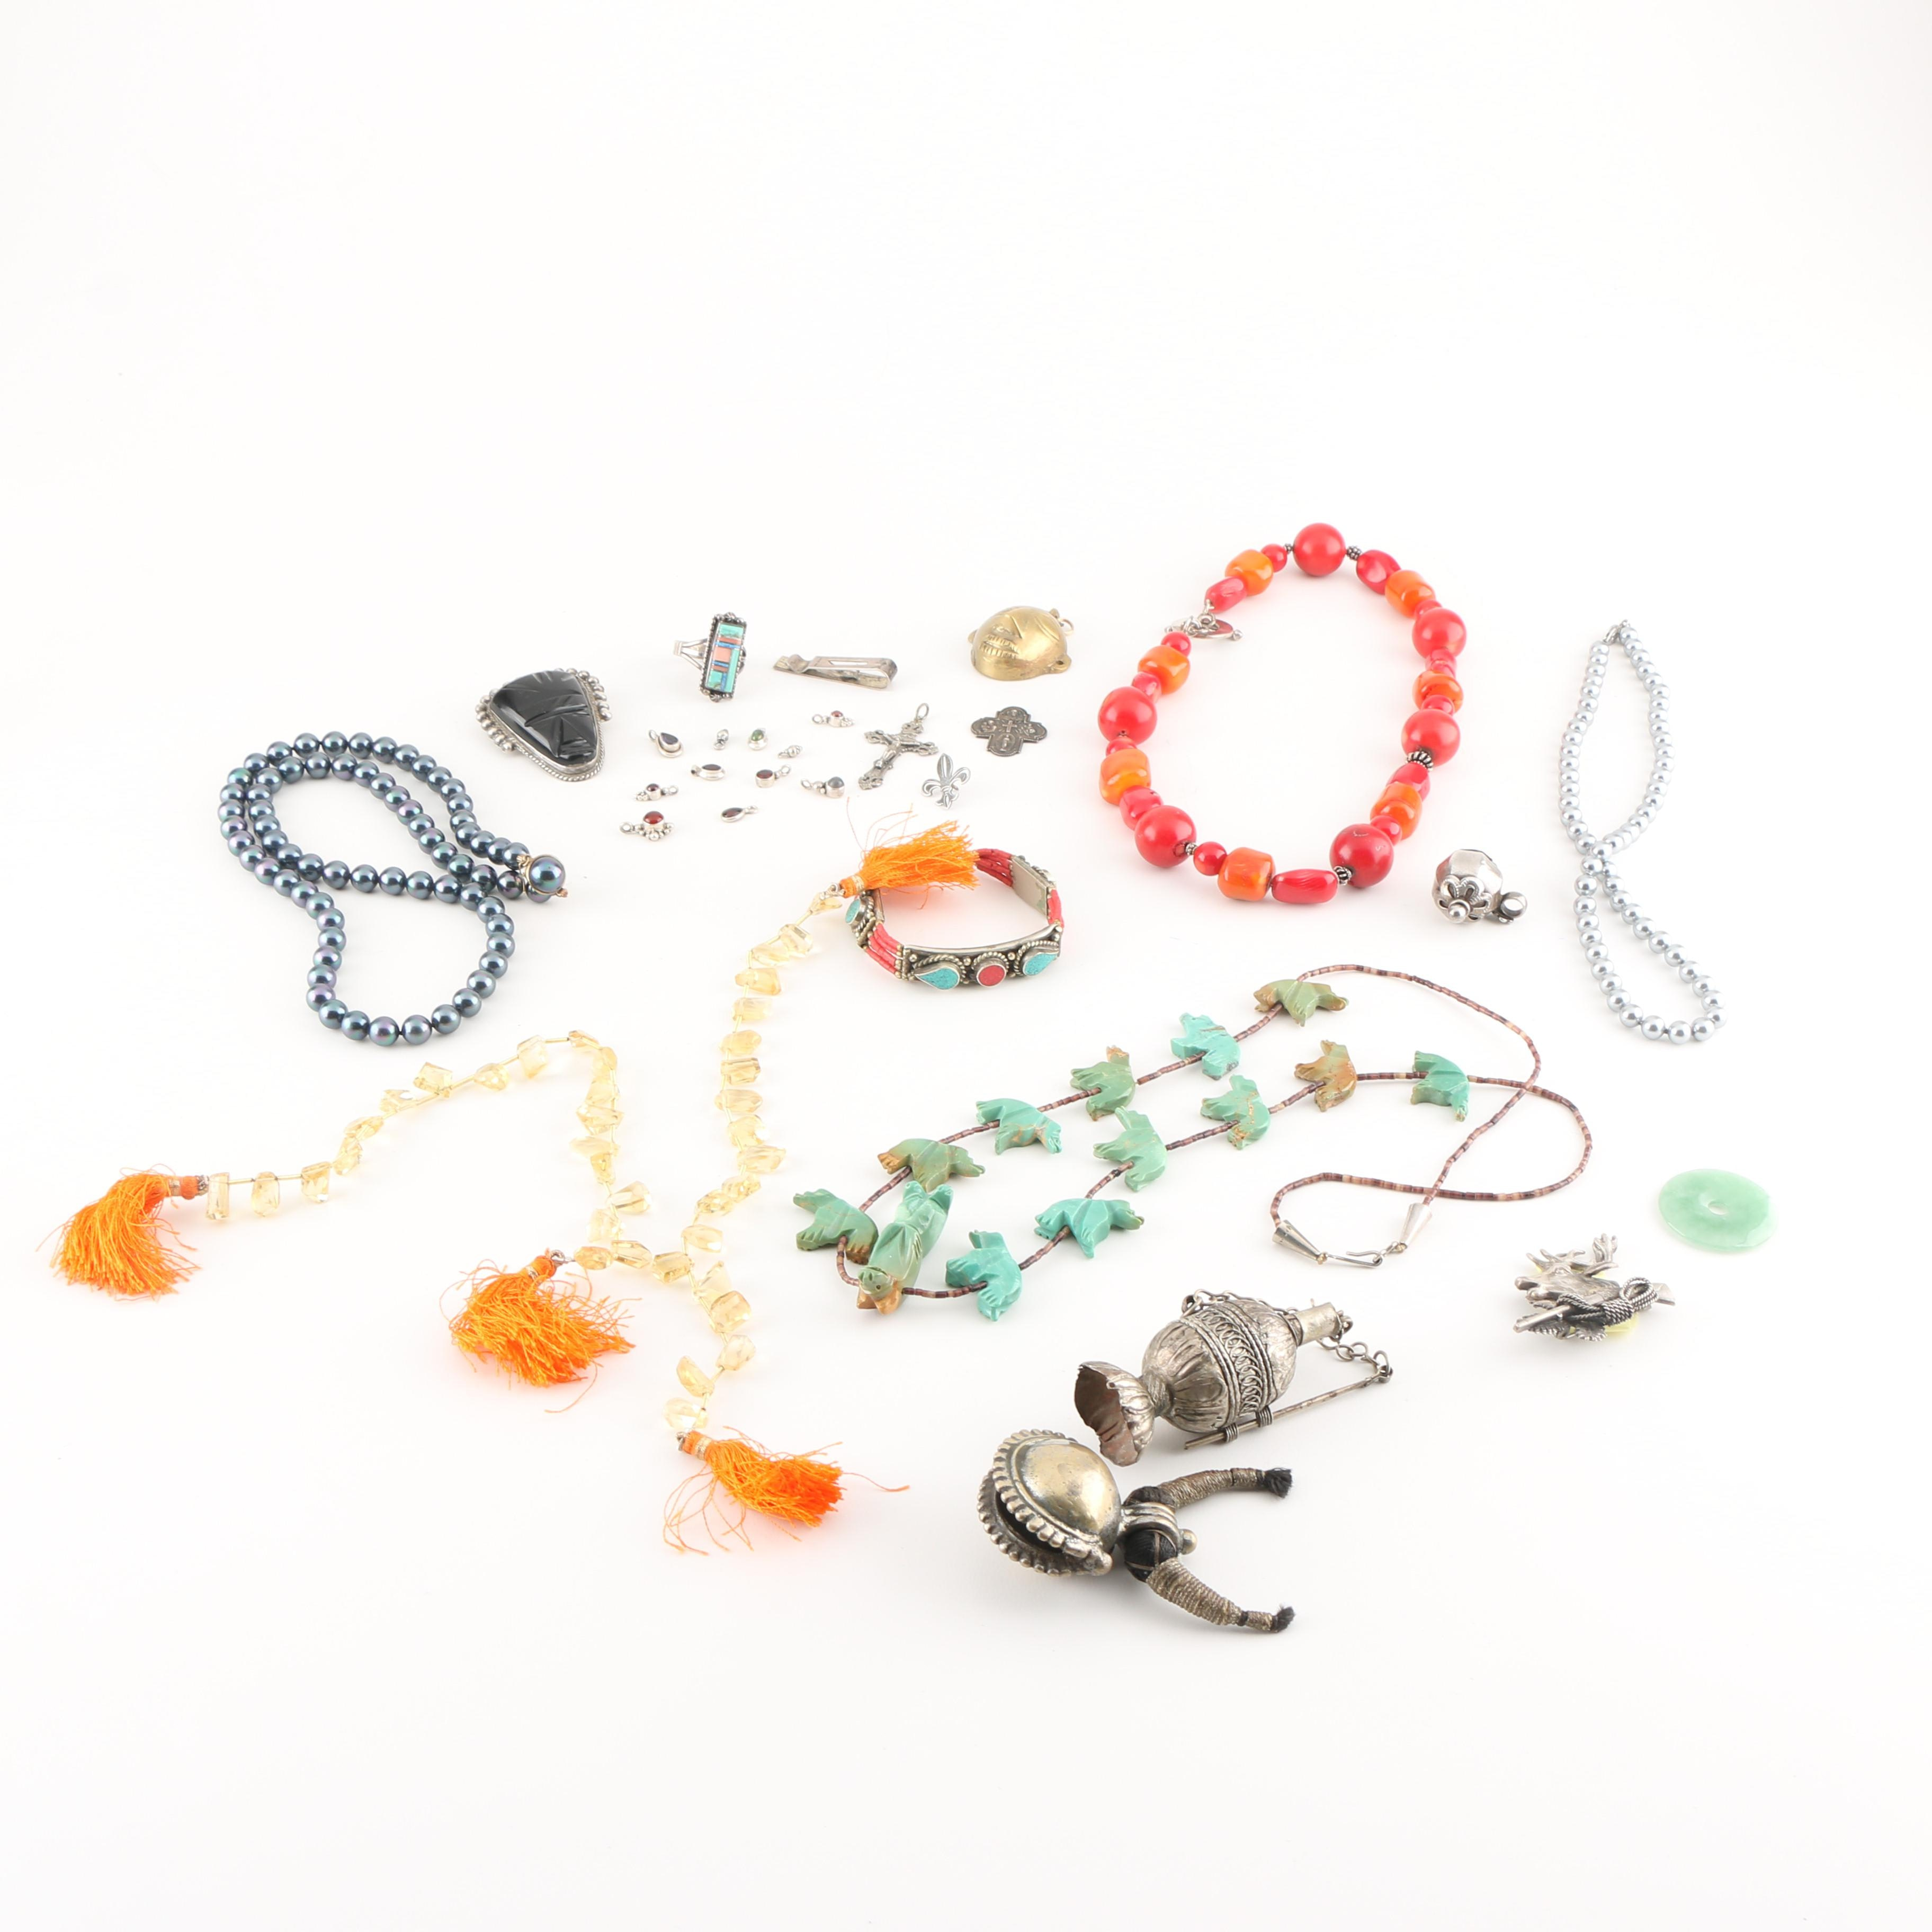 Assortment of Costume and Sterling Silver Jewelry Featuring Gemstones